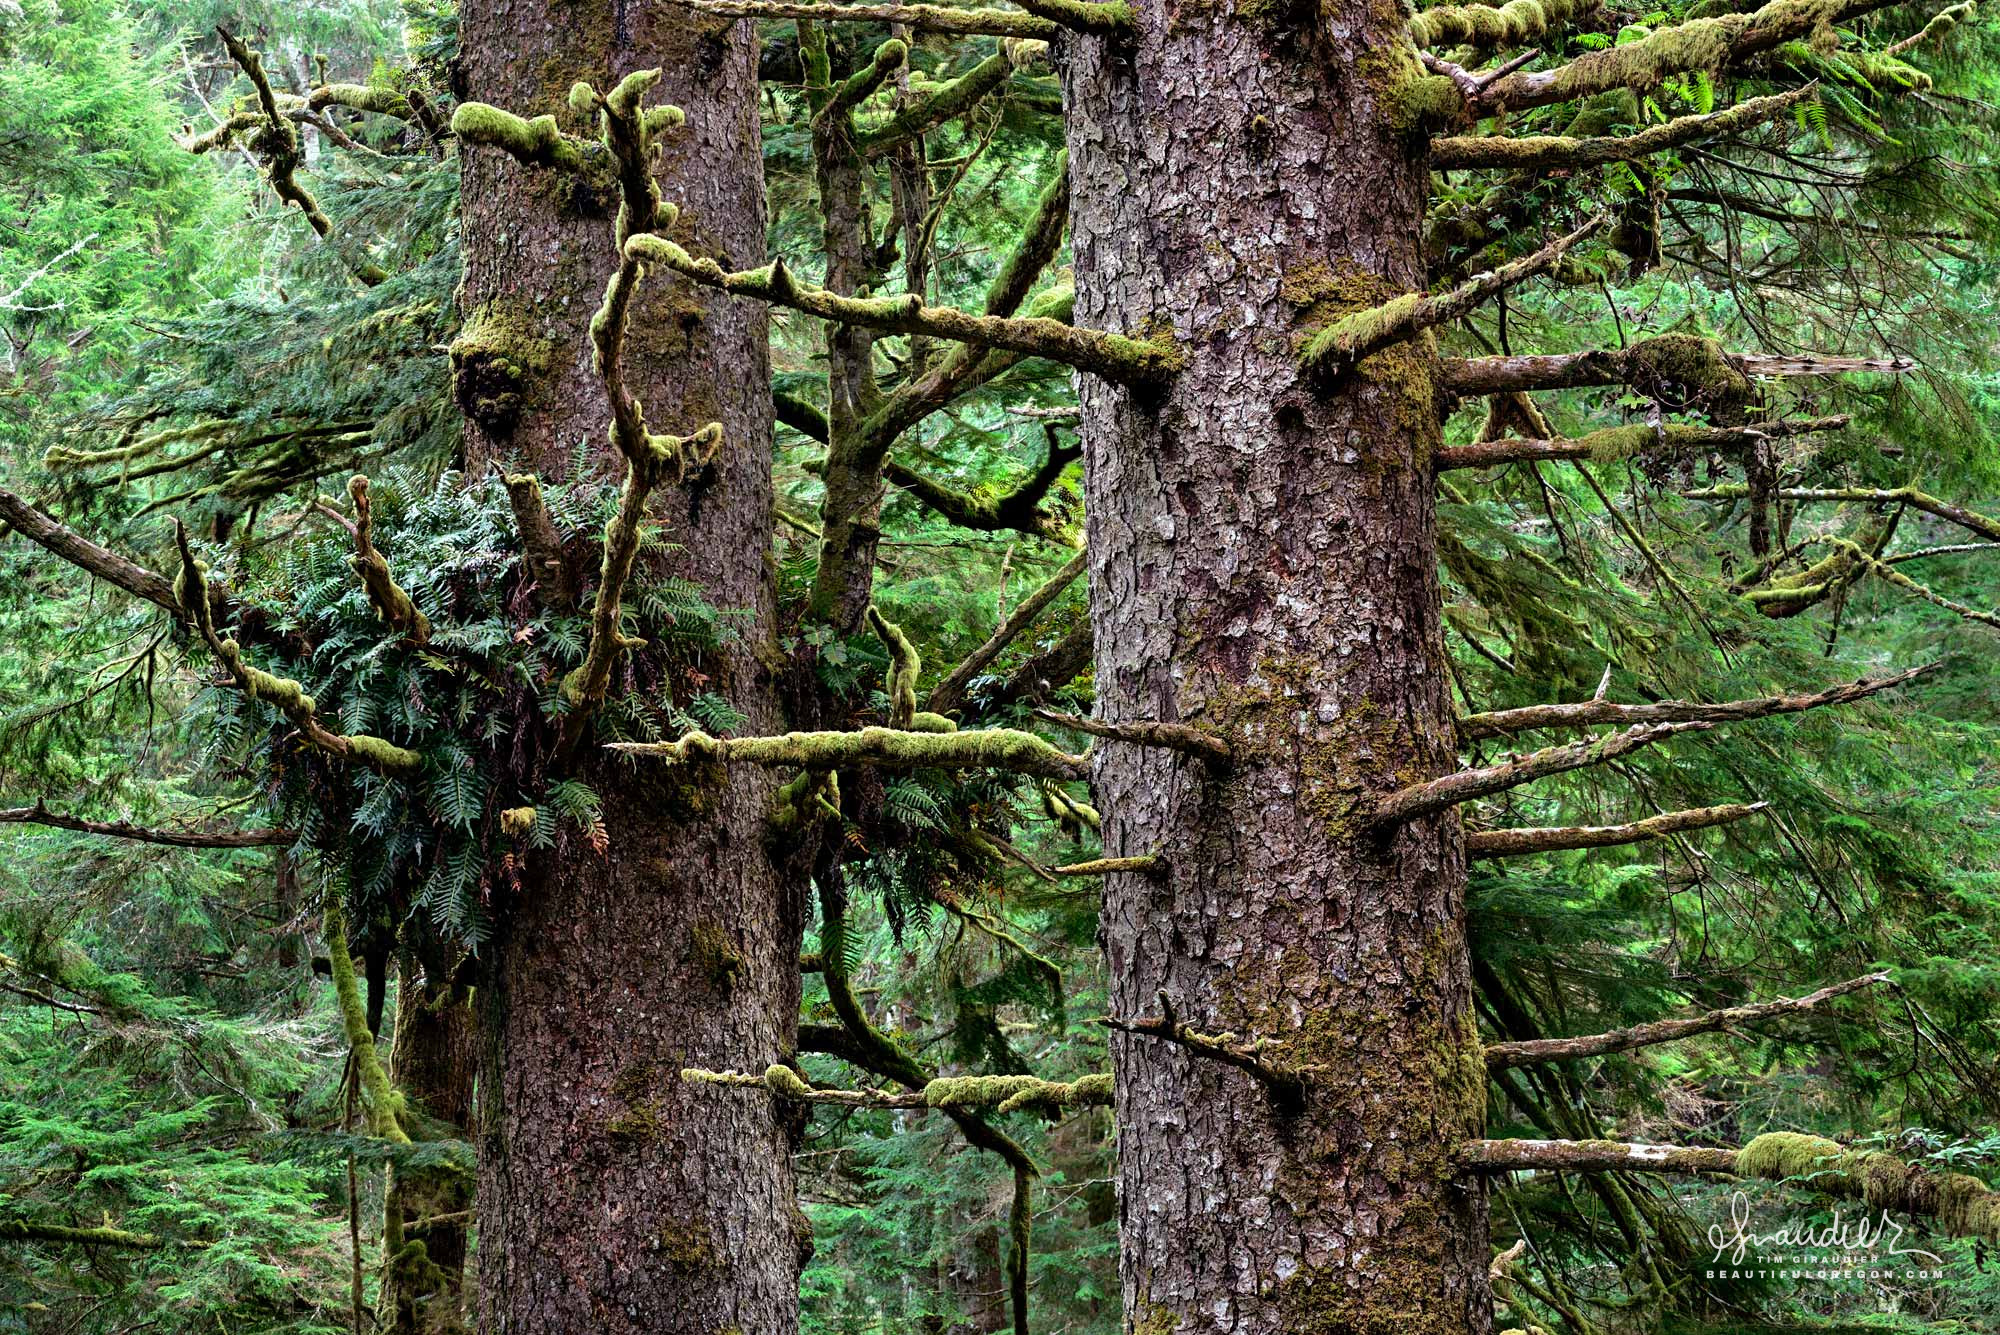 Old-growth Sitka Spruce and Evergreen Licorice Fern. Siuslaw National Forest. Lane County, Oregon Coast Range.